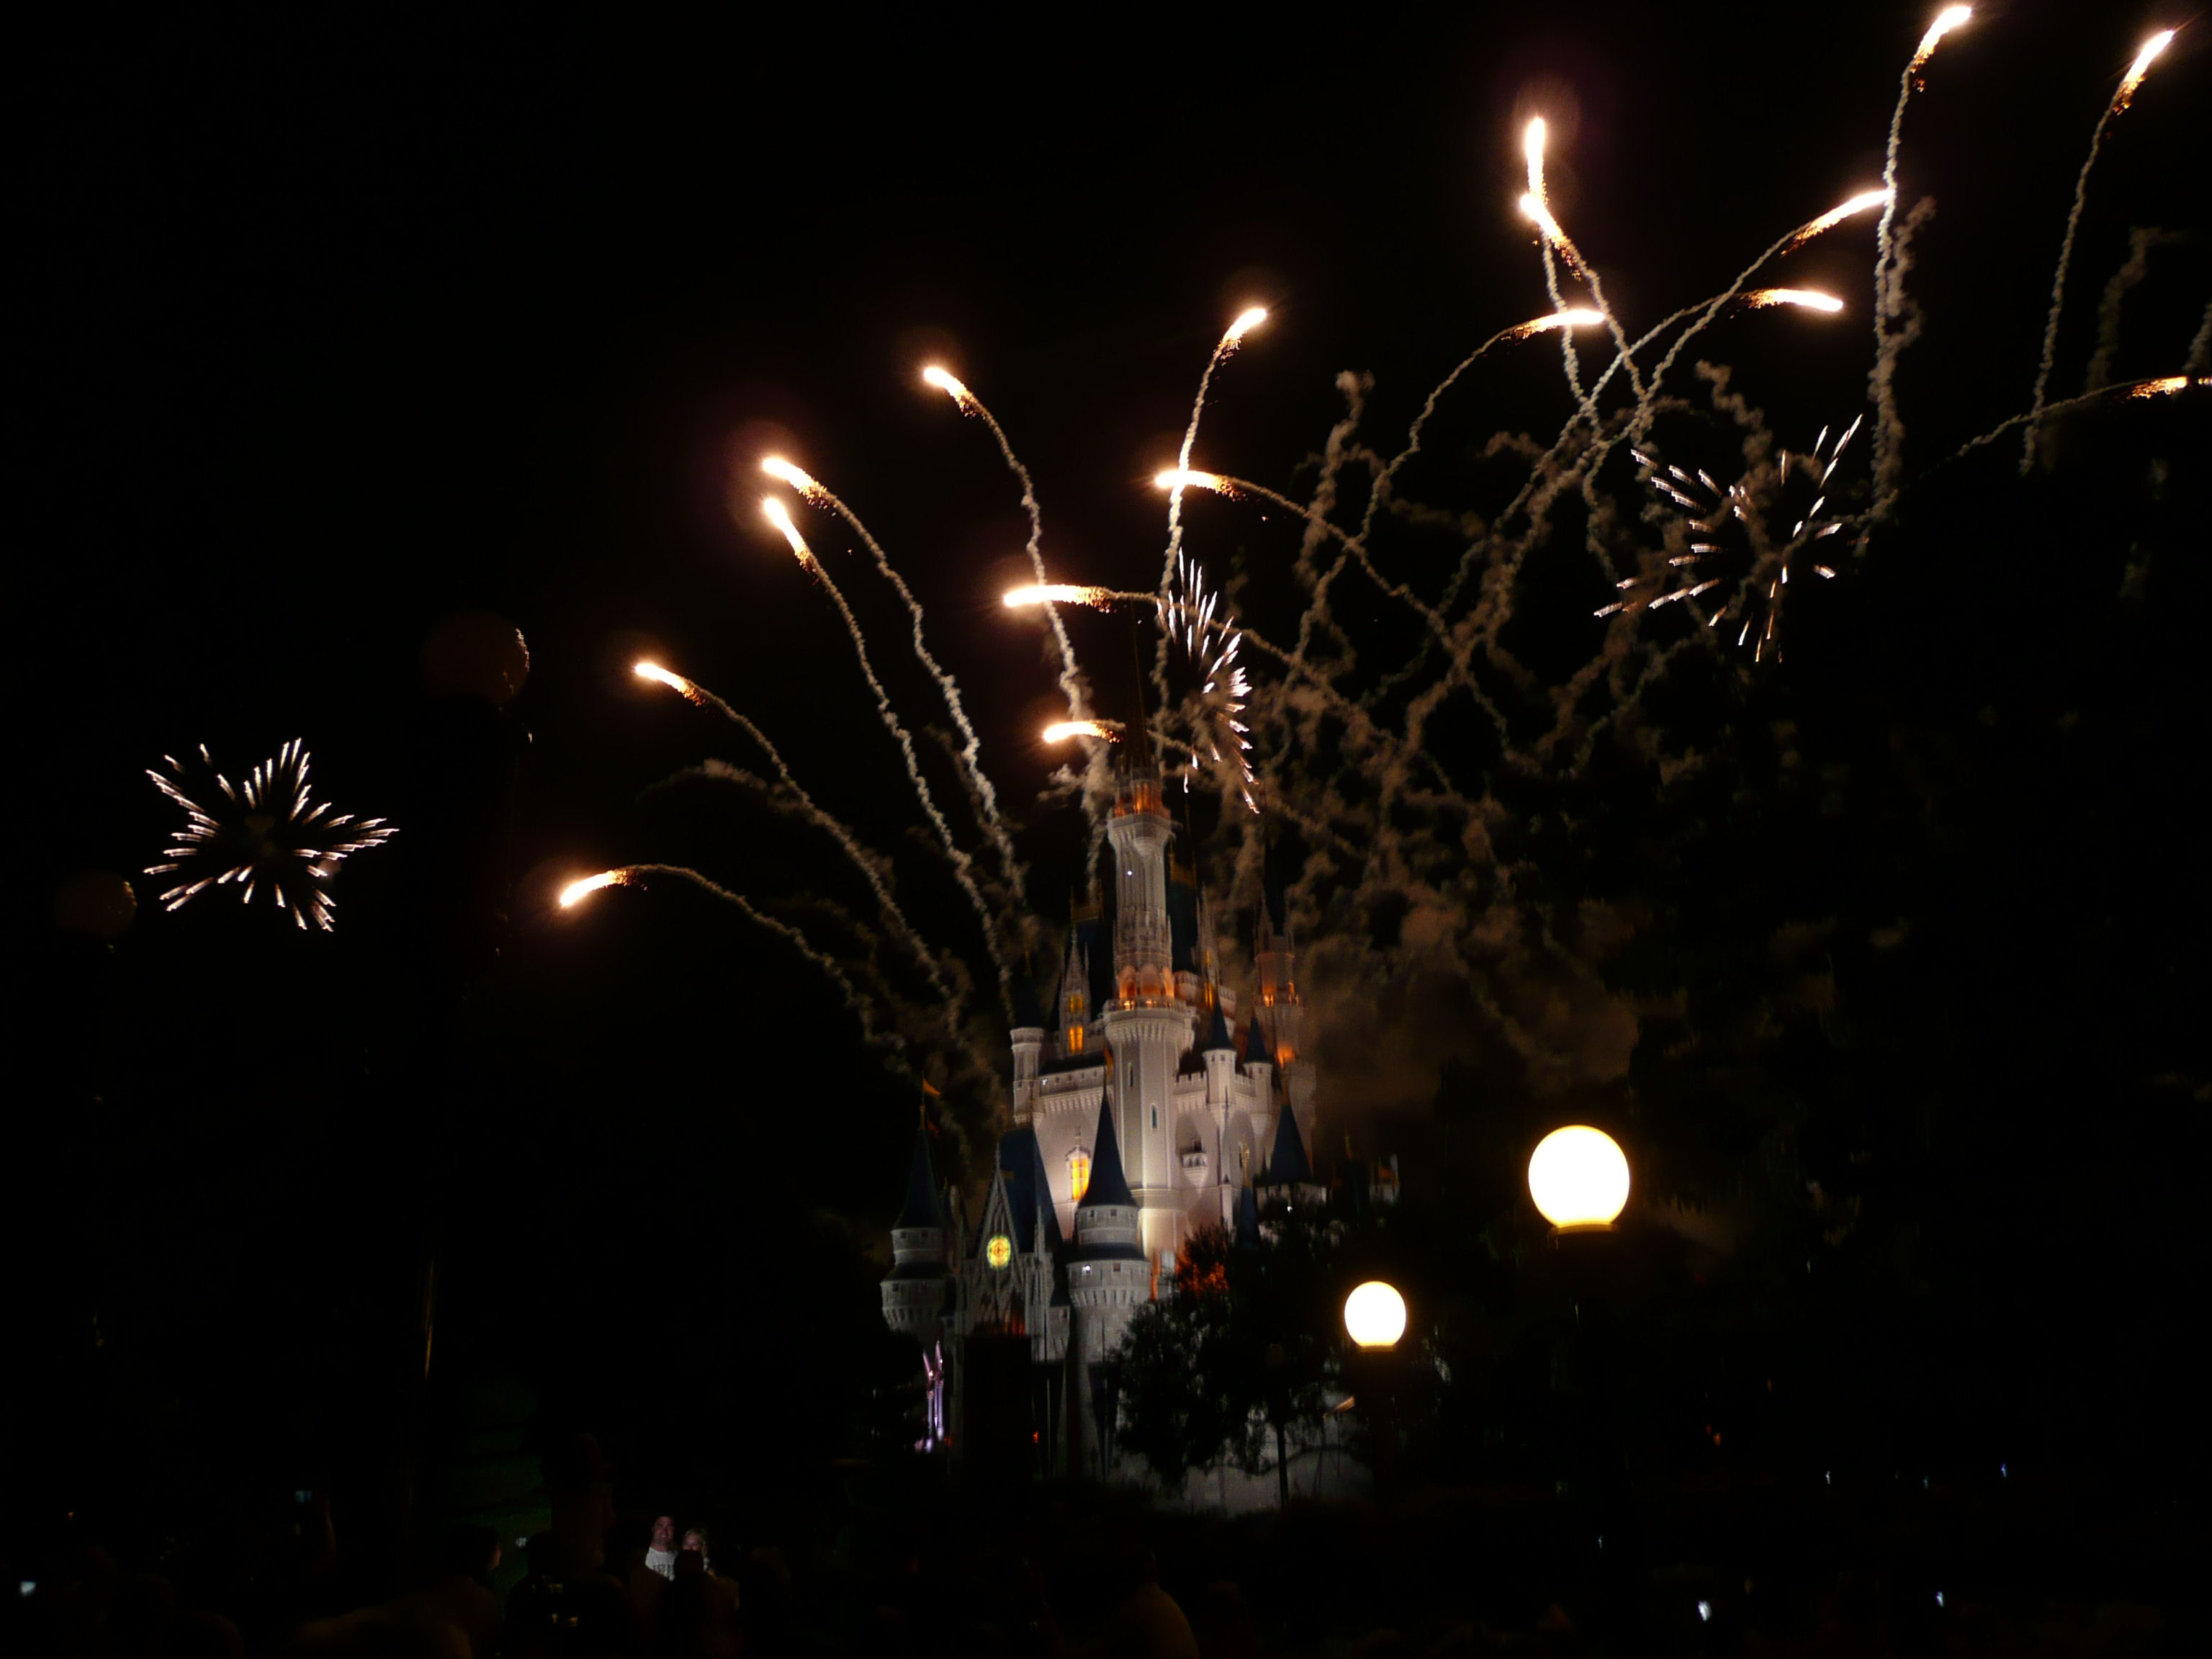 Fireworks over Cinderella's Castle at the Magic Kingdom, Disney World.